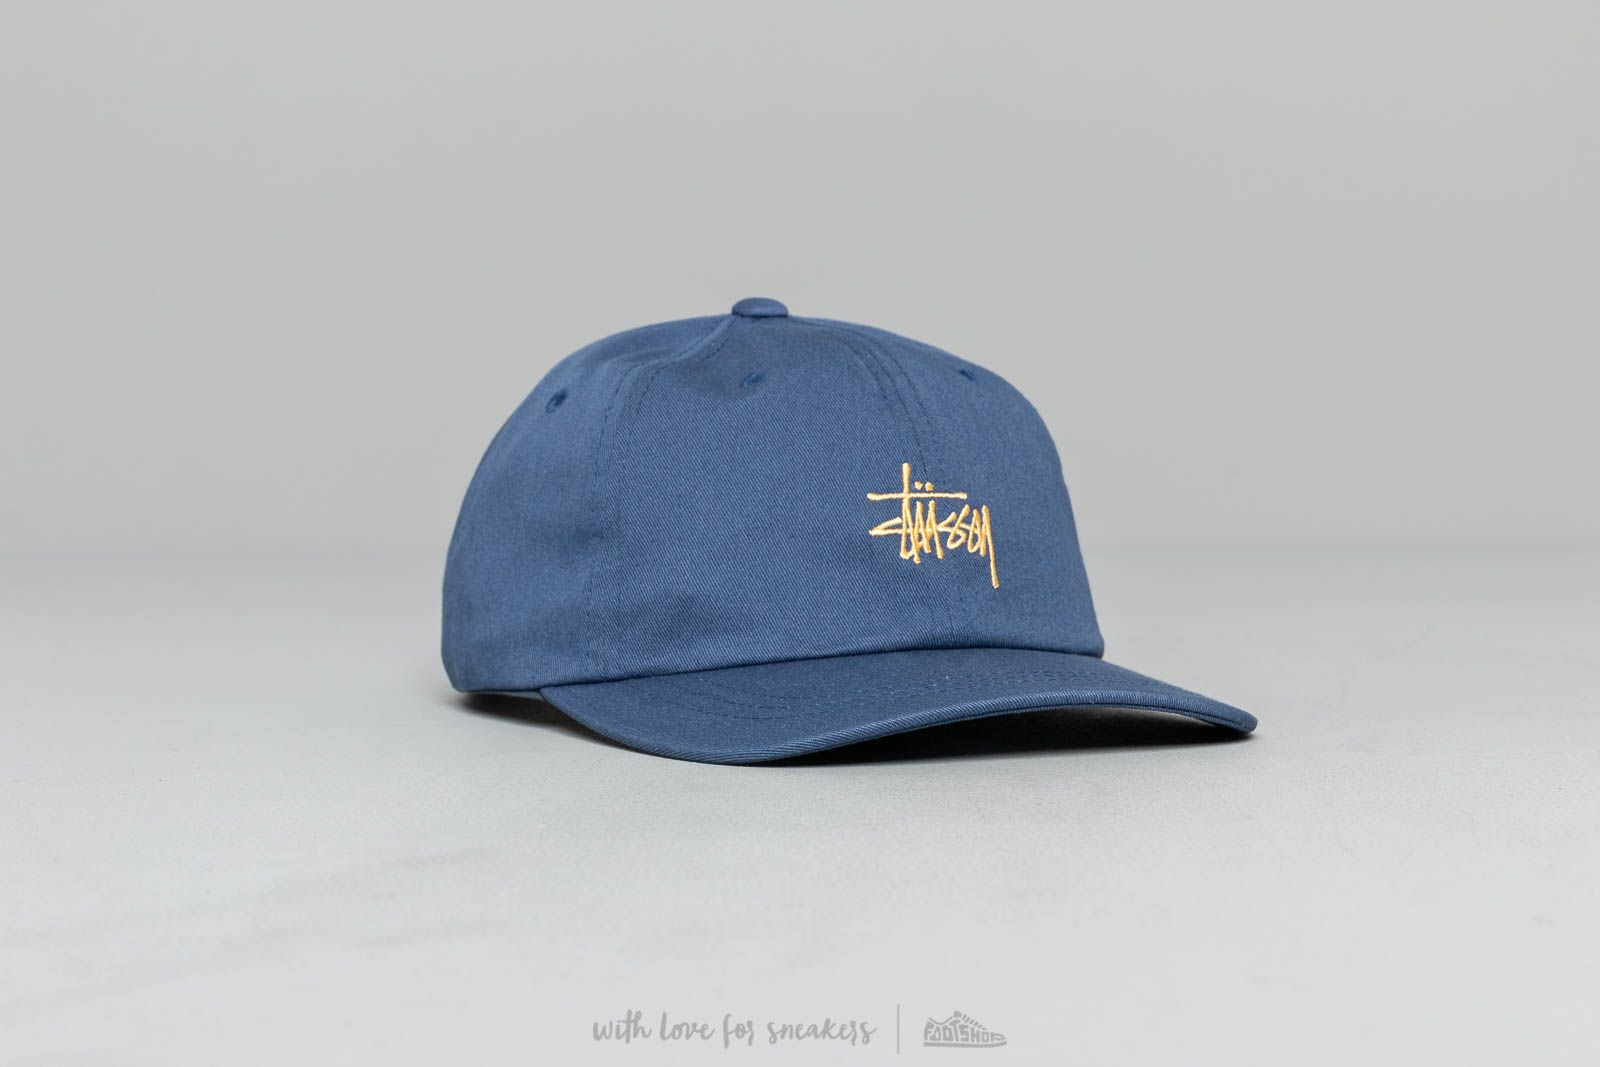 7a885aaf55b Stüssy Stock Low Pro Cap Navy at a great price £41 buy at Footshop